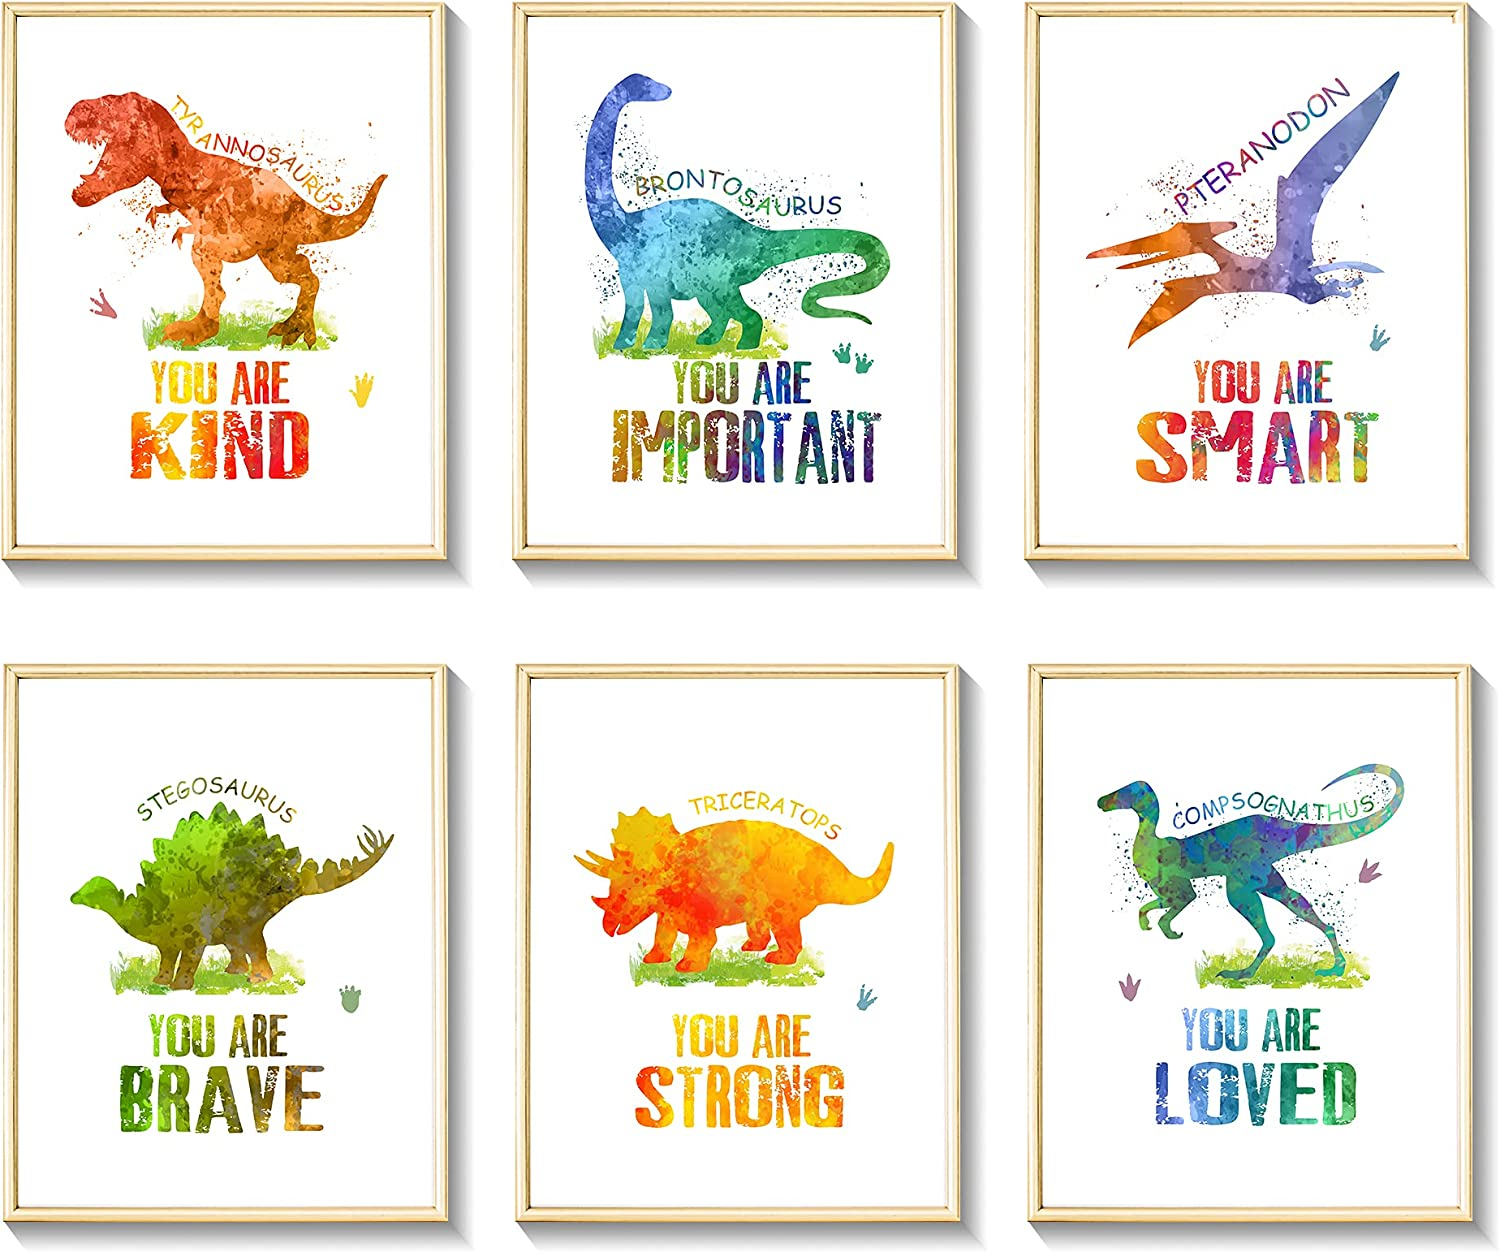 Dinosaur Wall Art Posters, Watercolor Dinosaur Wall Decor Prints, 6 Pcs 8 x 10 inch Unframed Motivational Quote Room Decor Photo Pictures for Kids Boys Nursery Bedroom Decorations